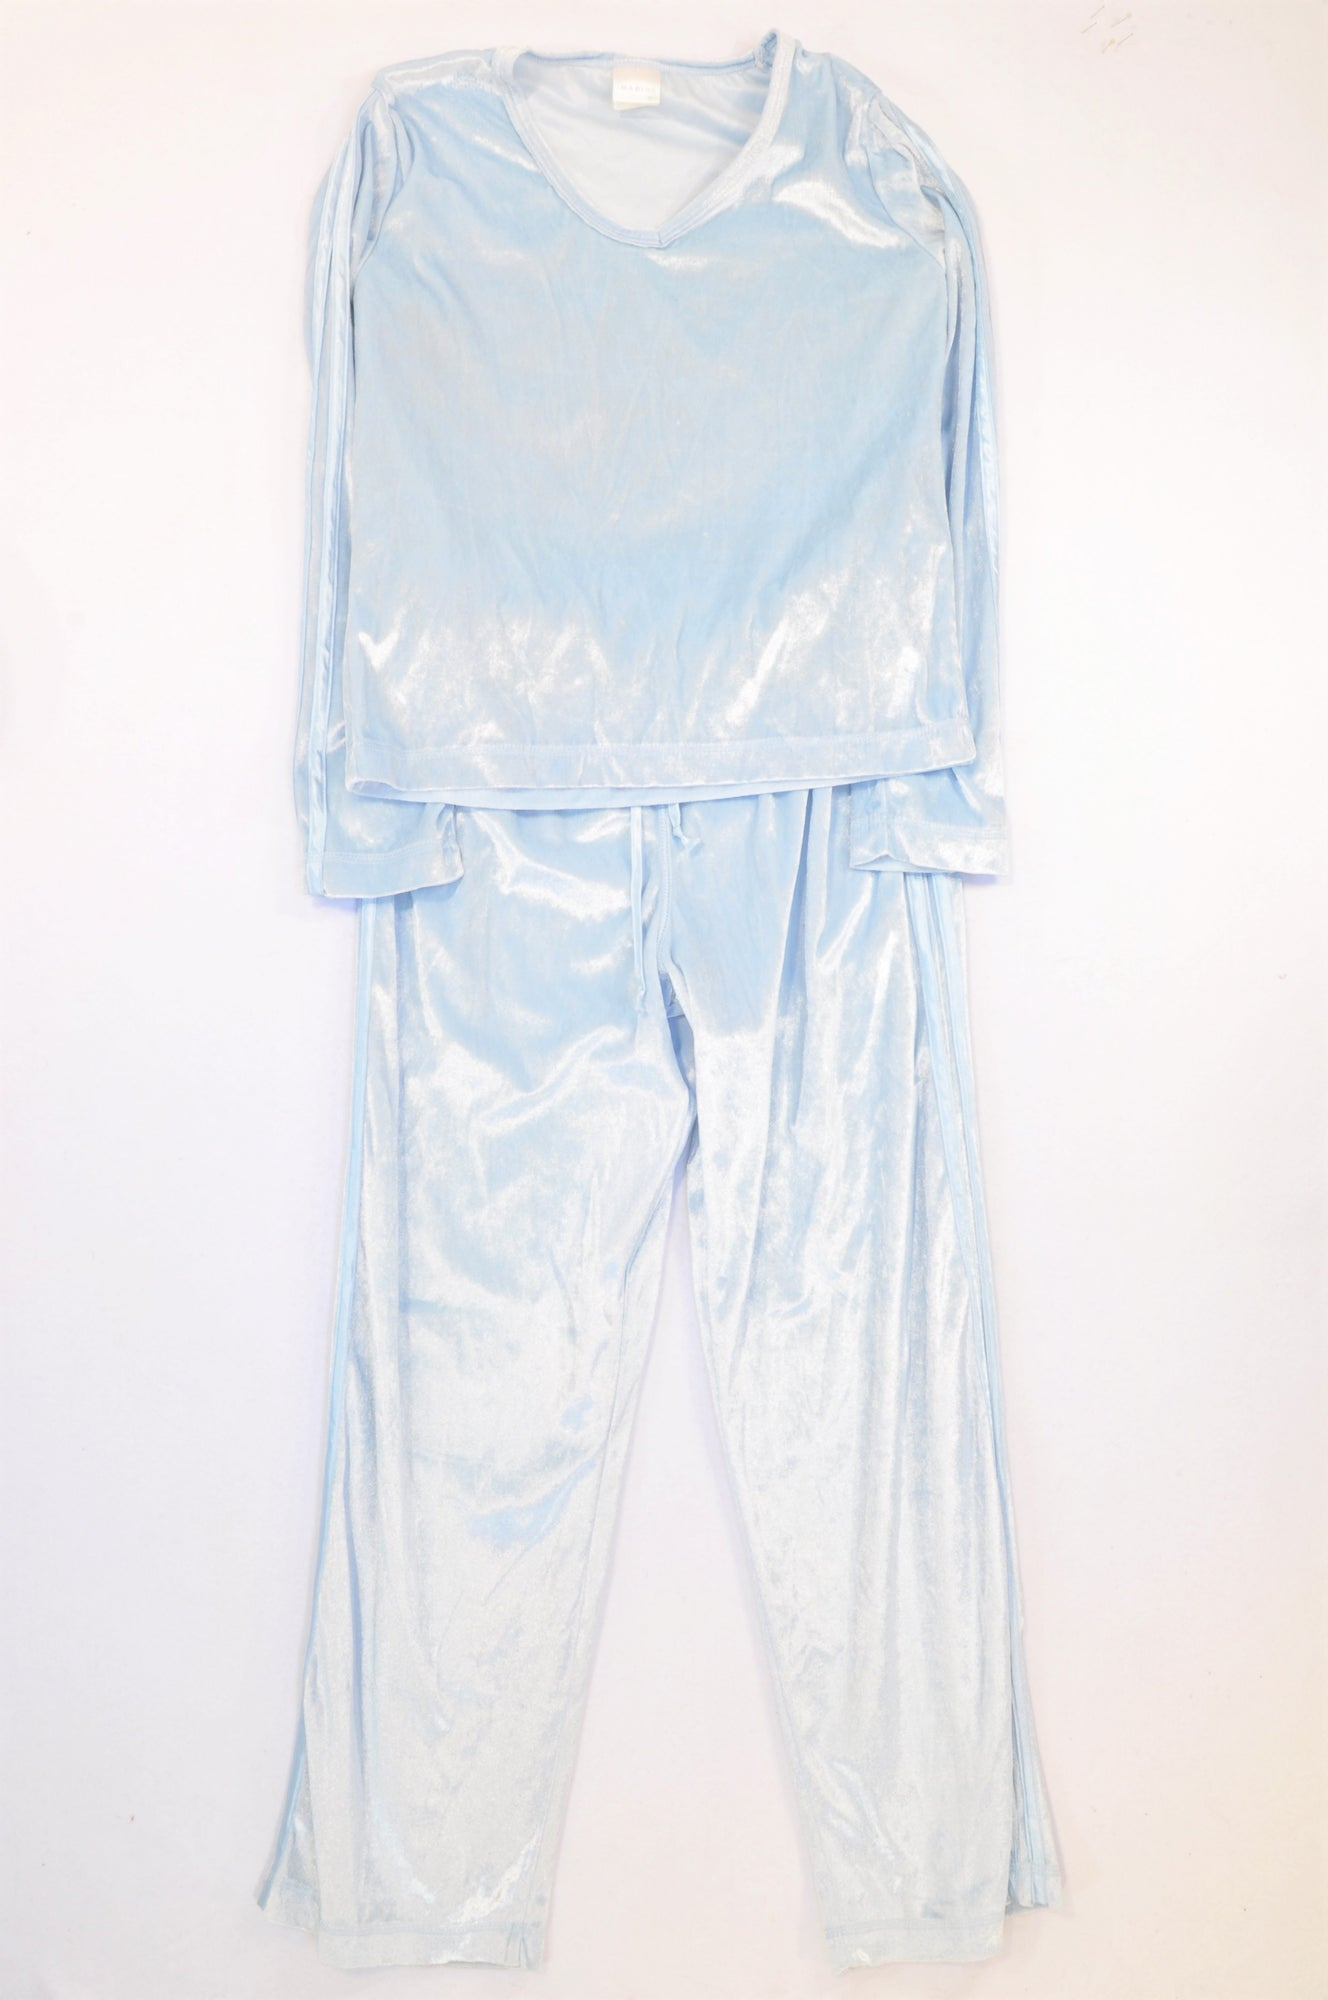 Imagine Sky Blue Velour Track Suit Women Size S